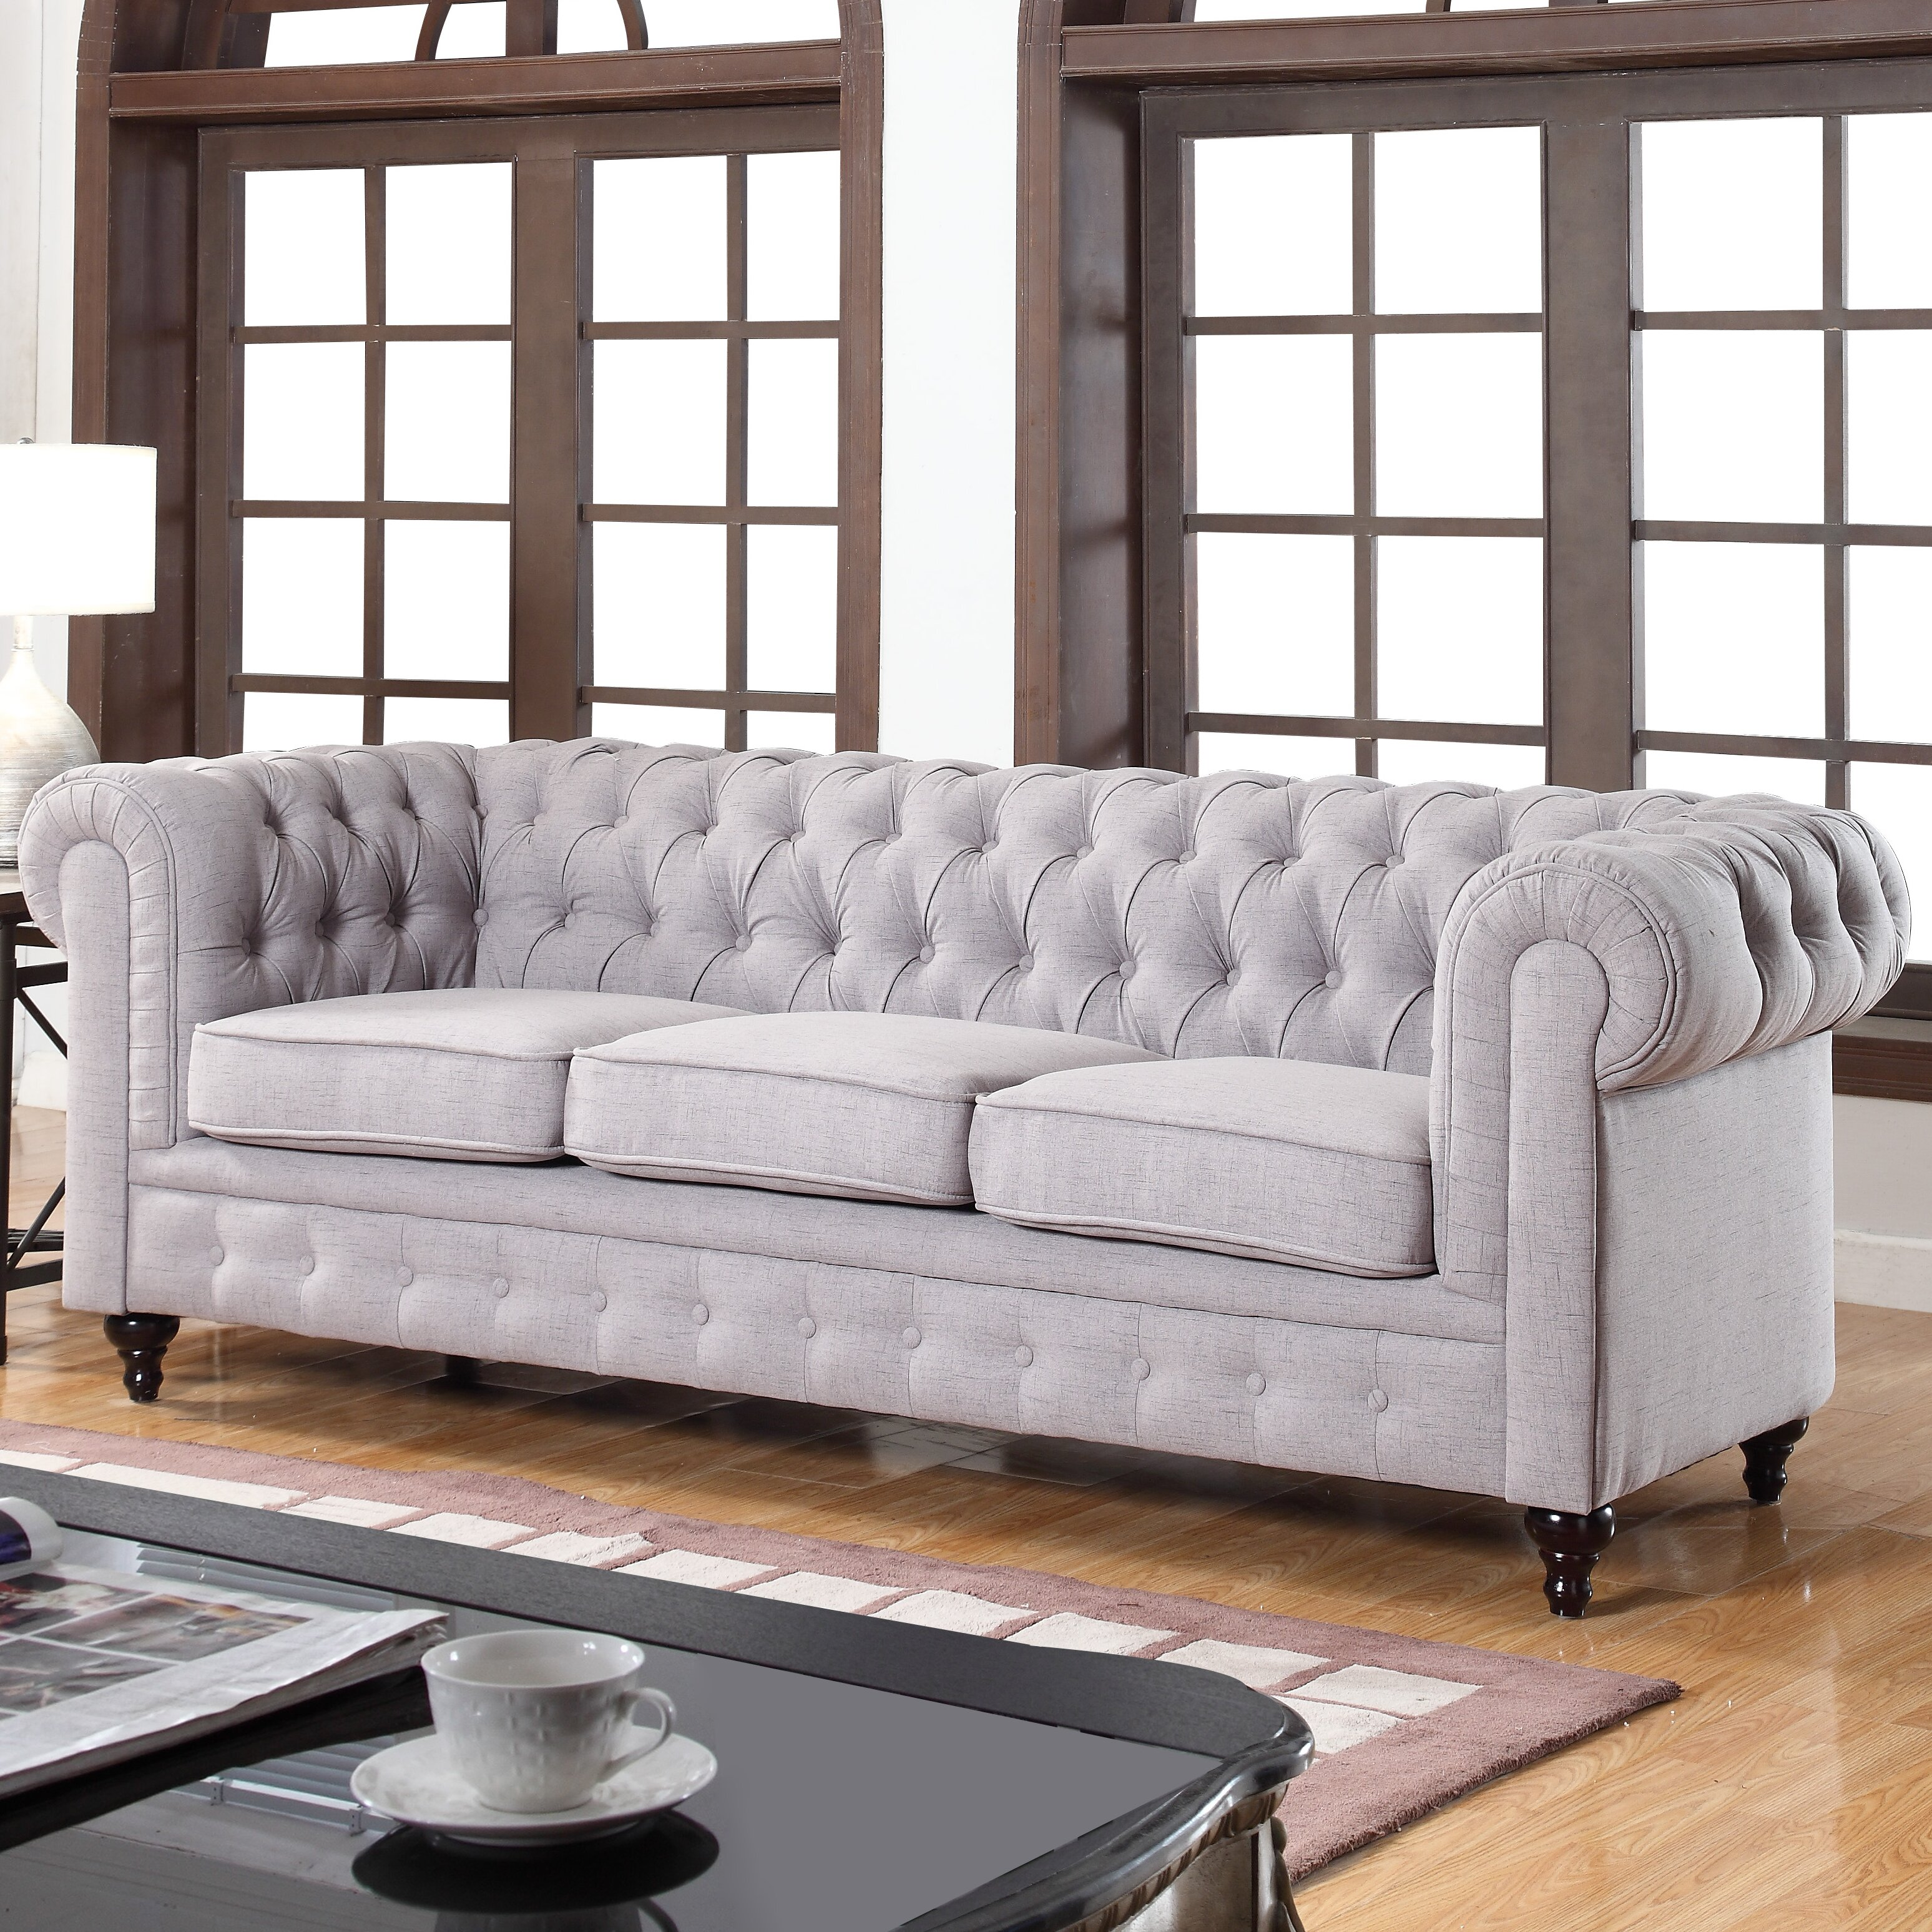 Madison Home USA Classic Tufted Linen Fabric Chesterfield